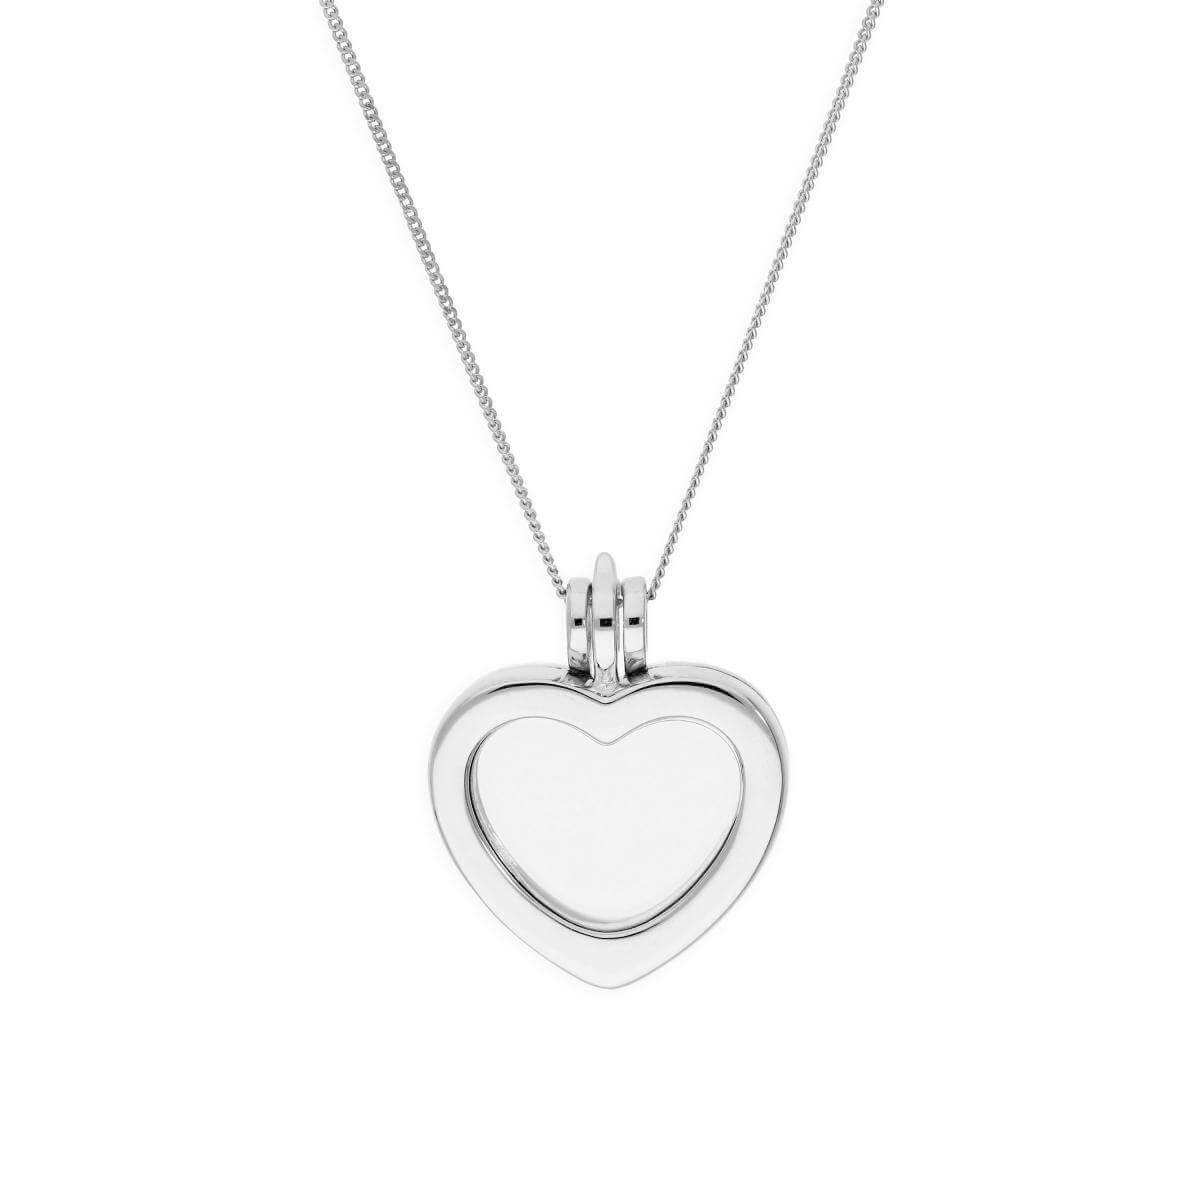 Small Sterling Silver Heart Floating Charm Locket on Chain 16 - 22 Inches